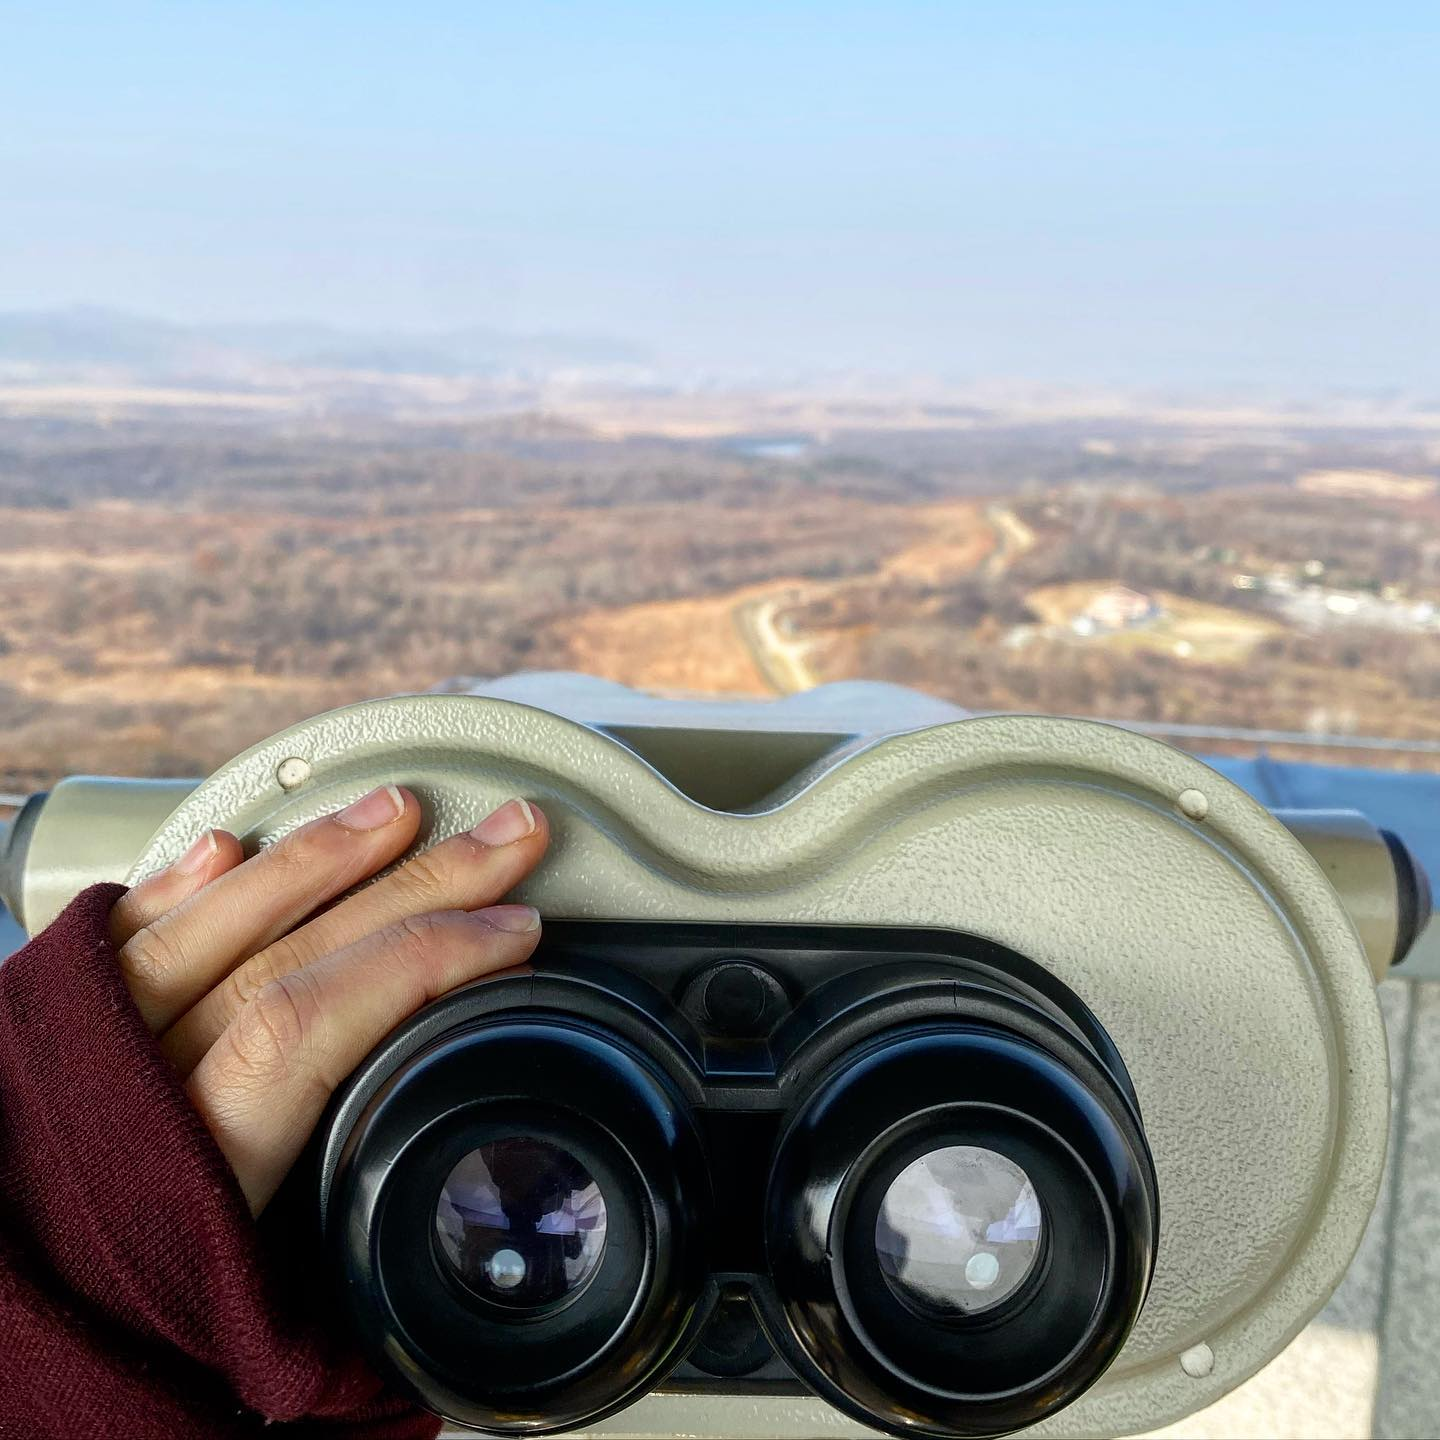 [Looking over at North Korea] A week ago, I visited the Demilitarized Zone…